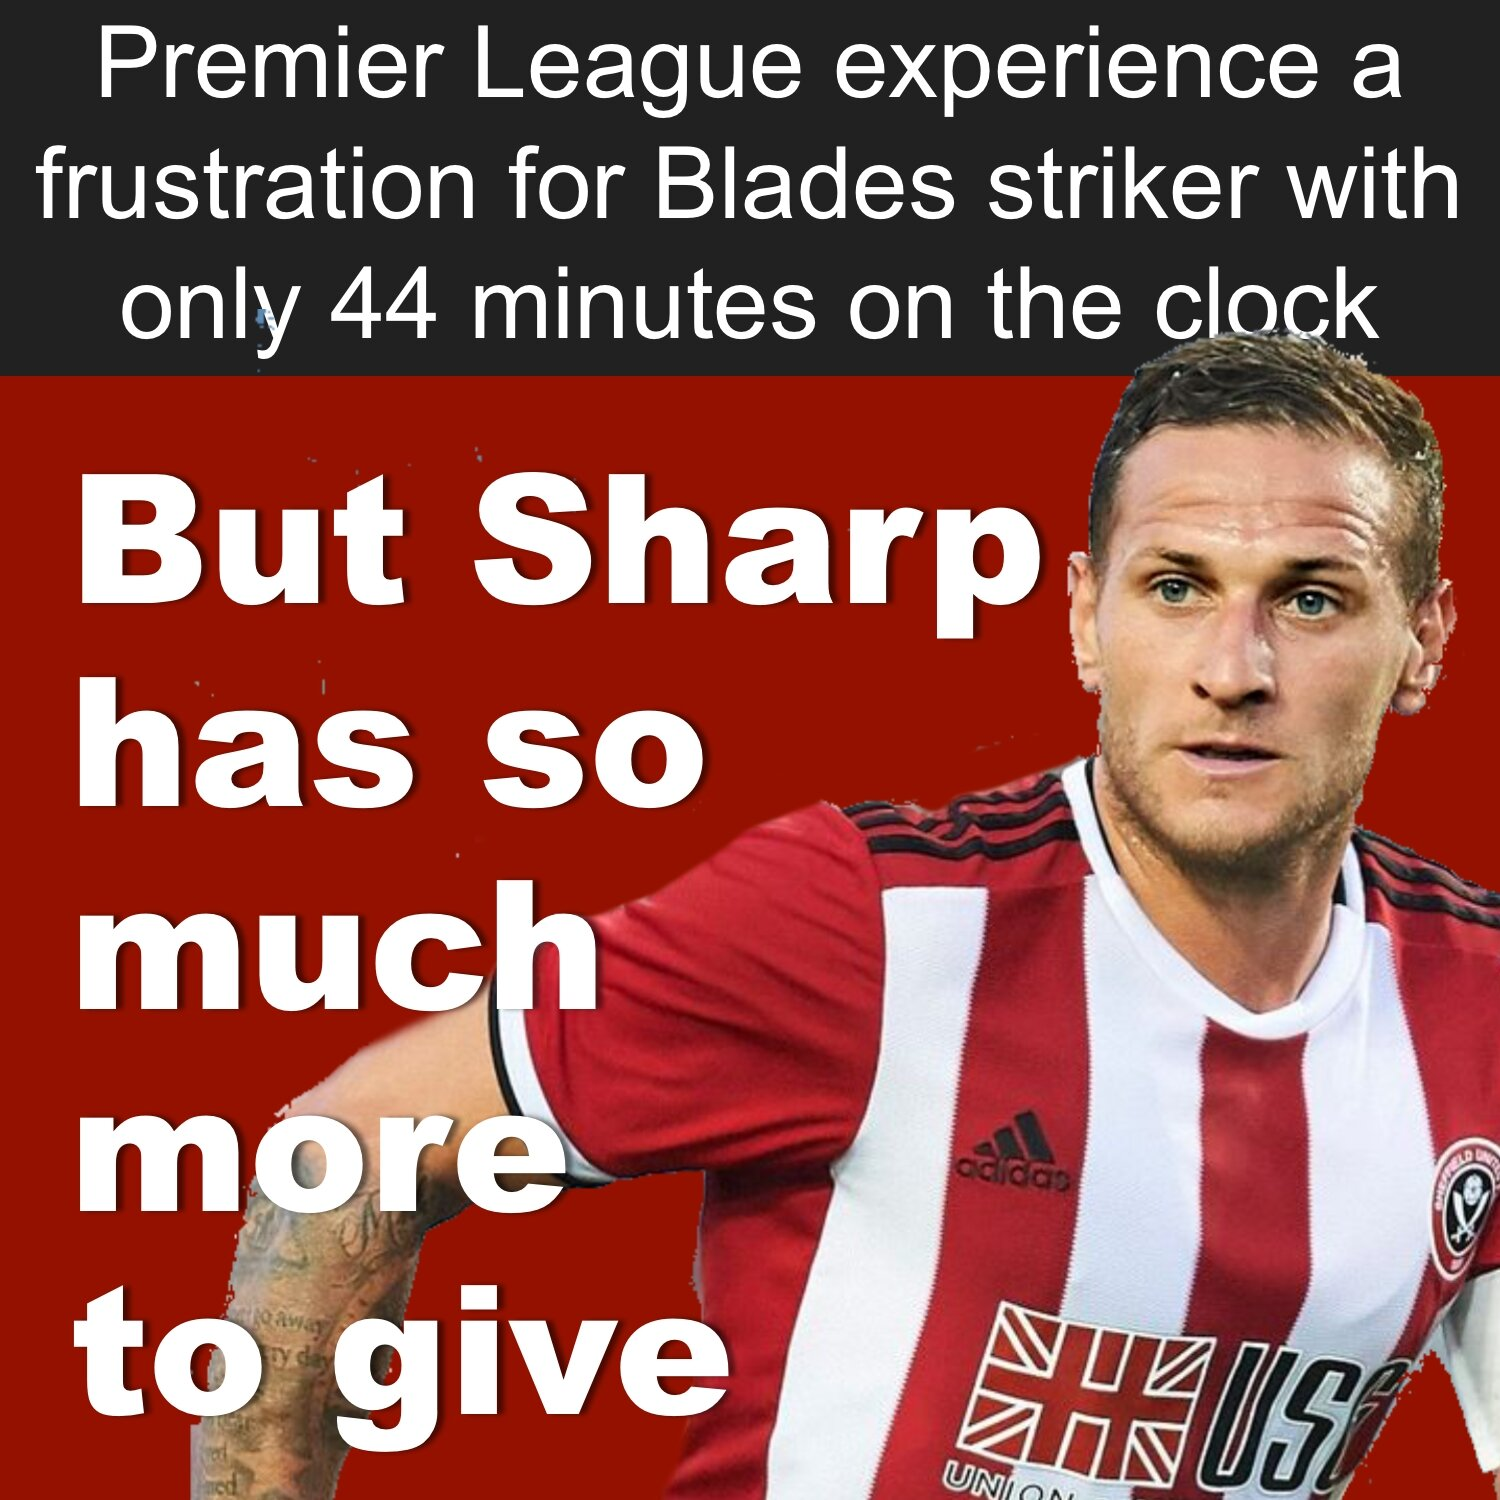 Billy Sharp's top flight frustration with Blades display